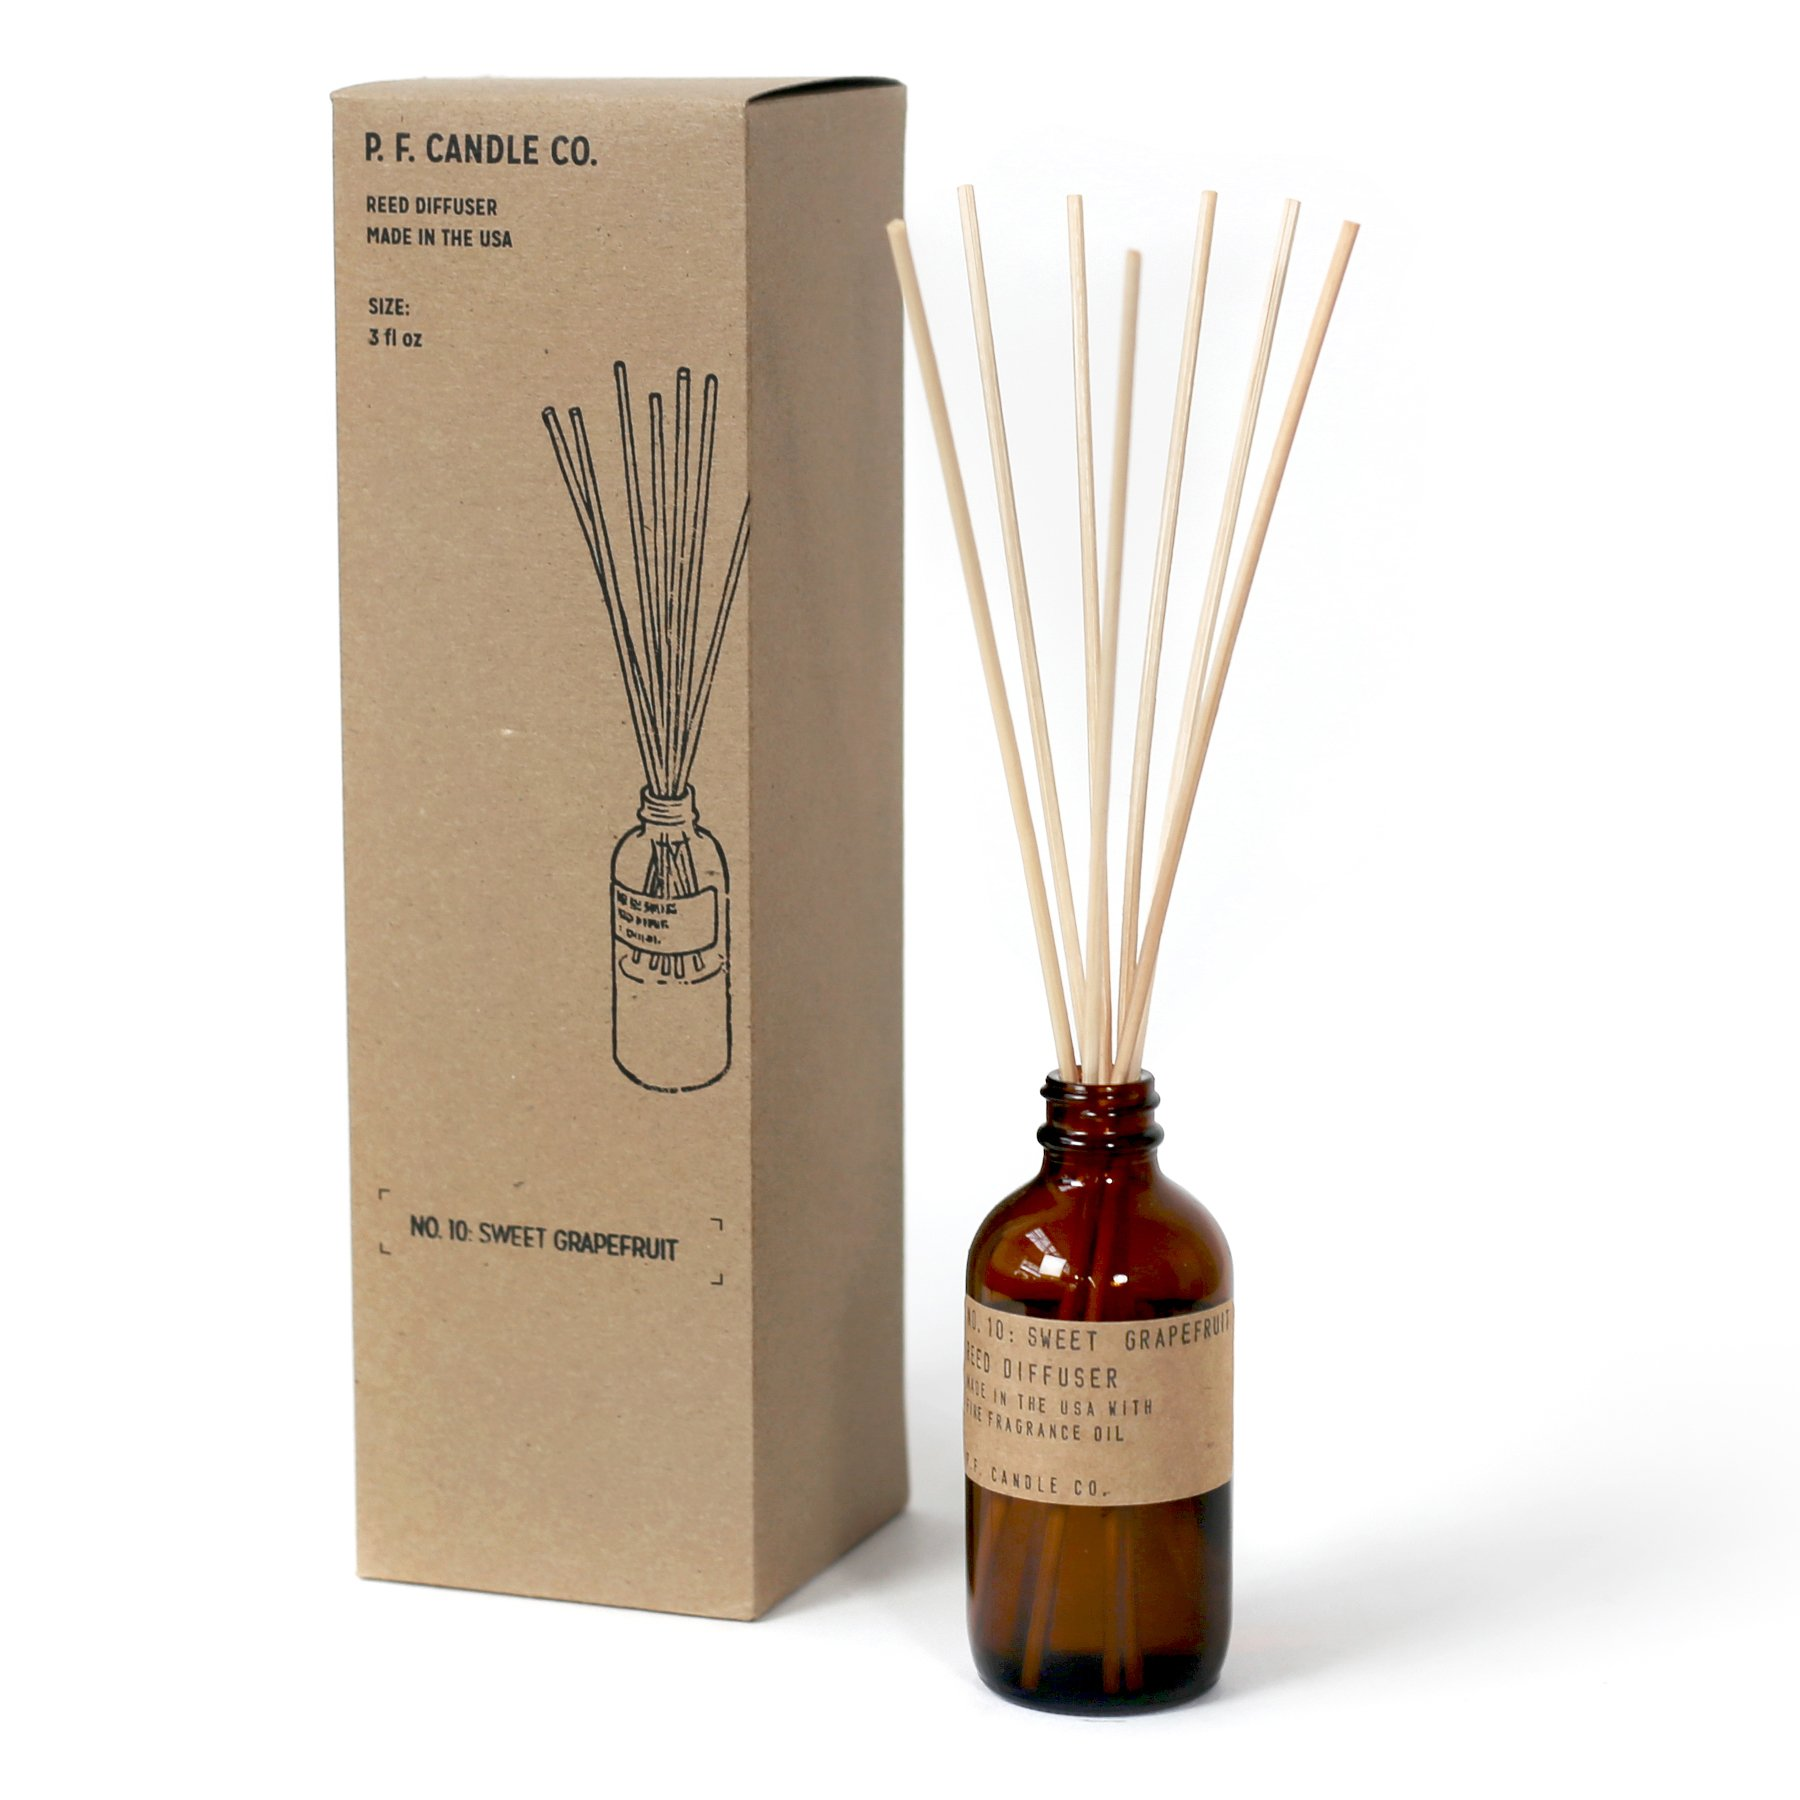 P.F. Candle Co. - No. 10: Sweet Grapefruit Diffuser by P.F. Candle Co. (Image #2)